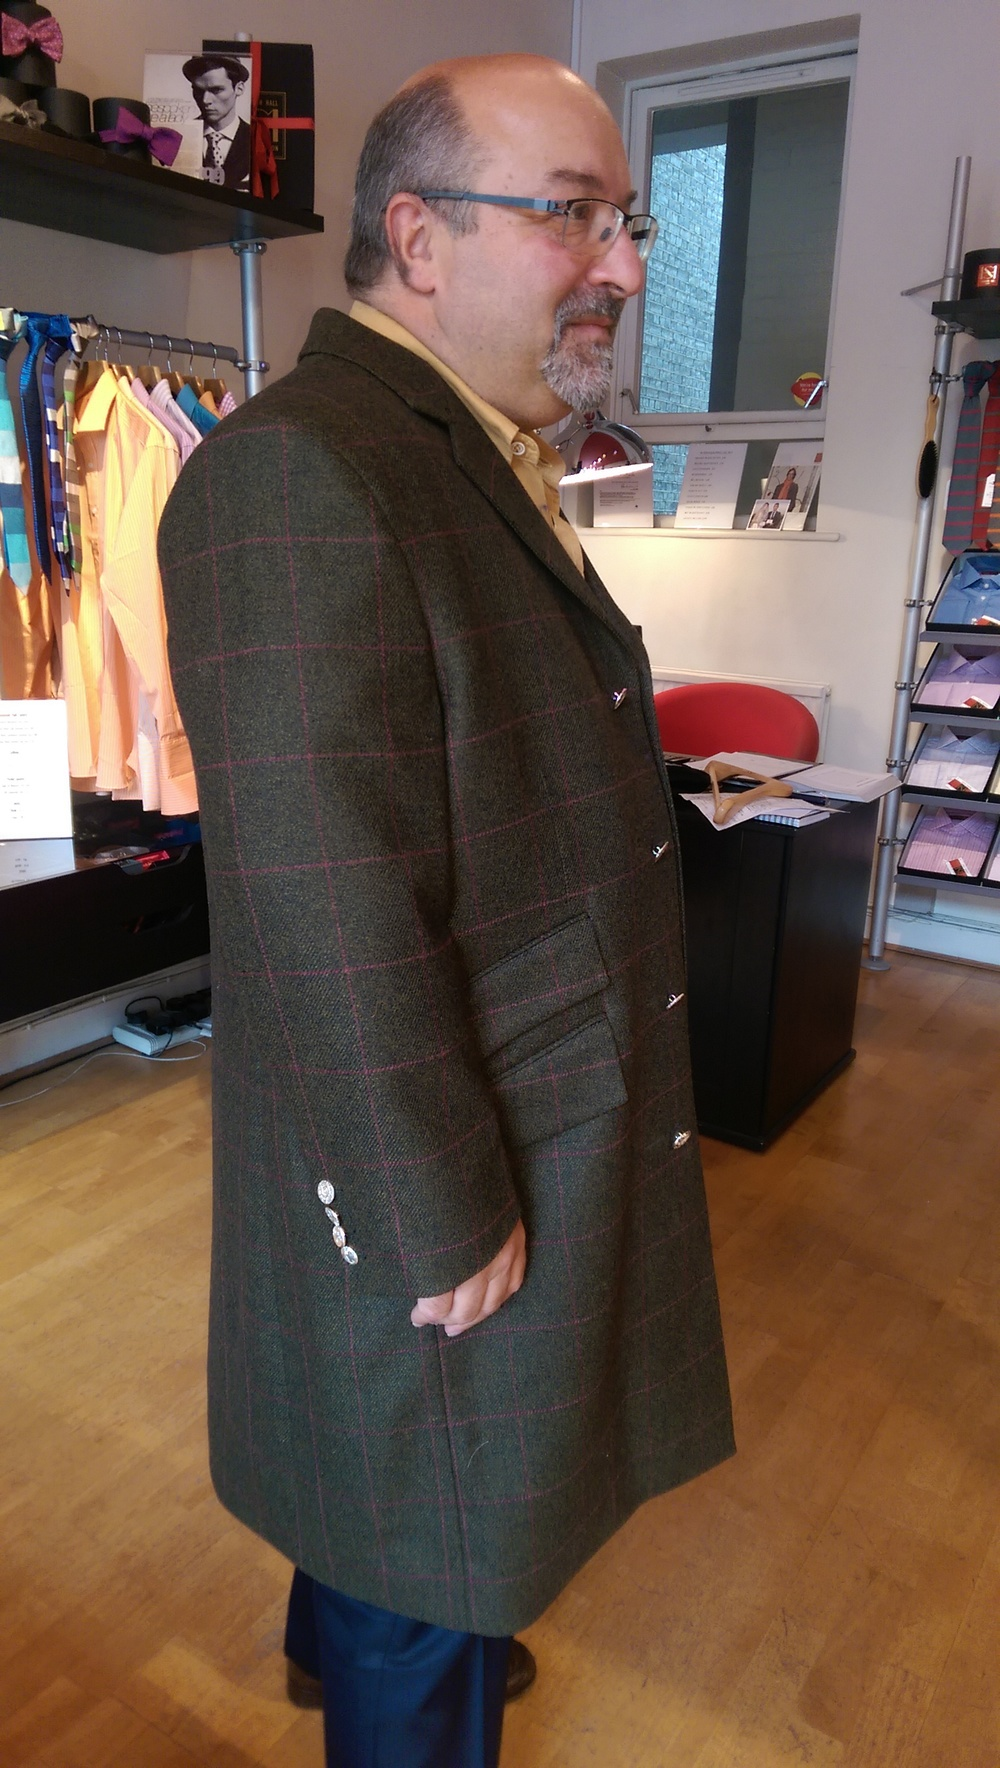 gordon-hamme-bespoke-tweed-coat-silver-buttons-all-uk-made-moss-green-magenta-pink-check.jpg